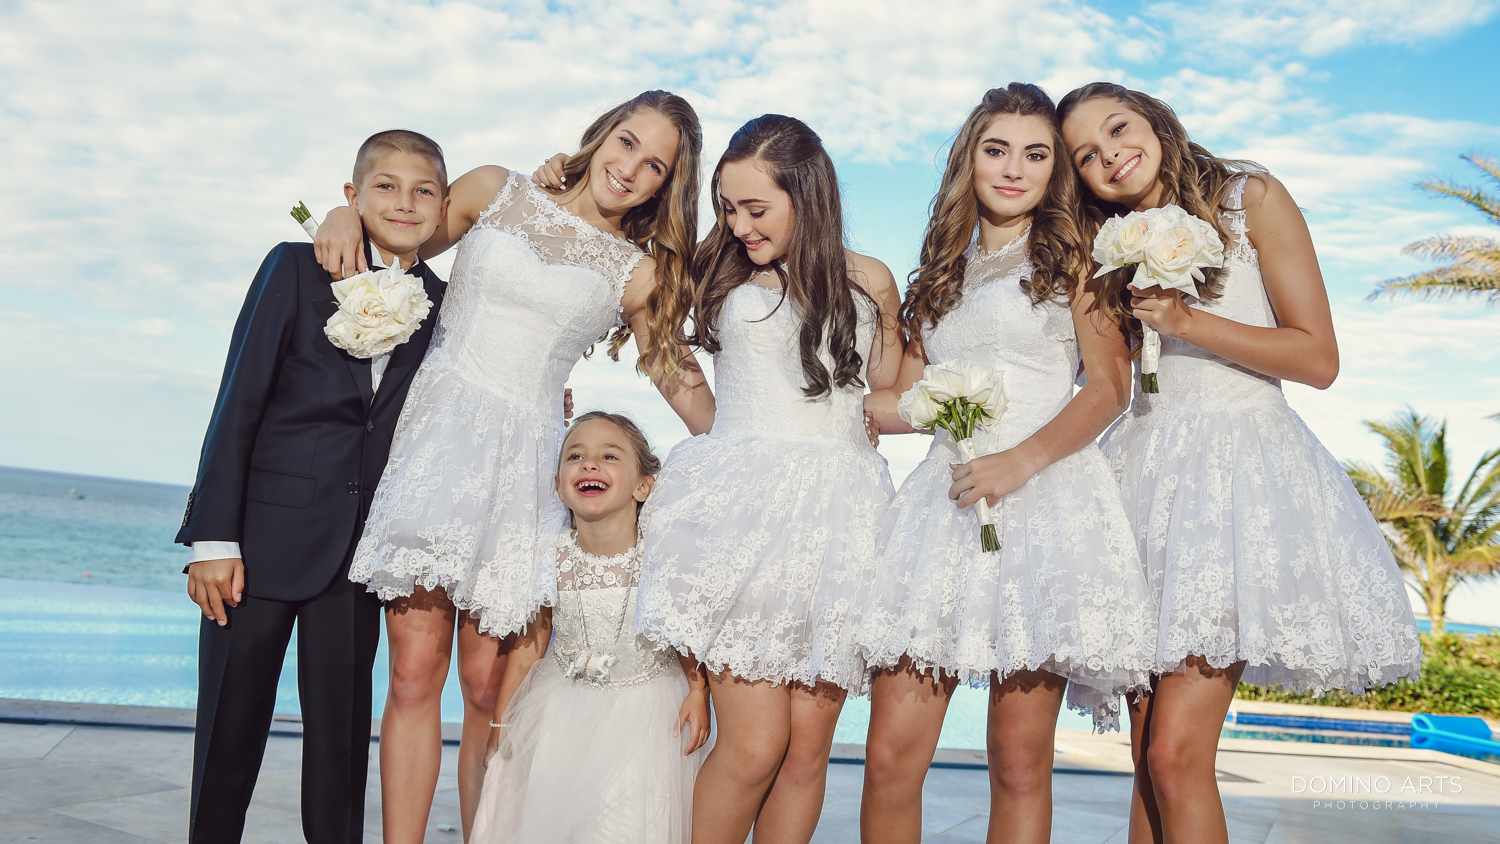 Fun wedding picture at One&Only Ocean Club Bahamas